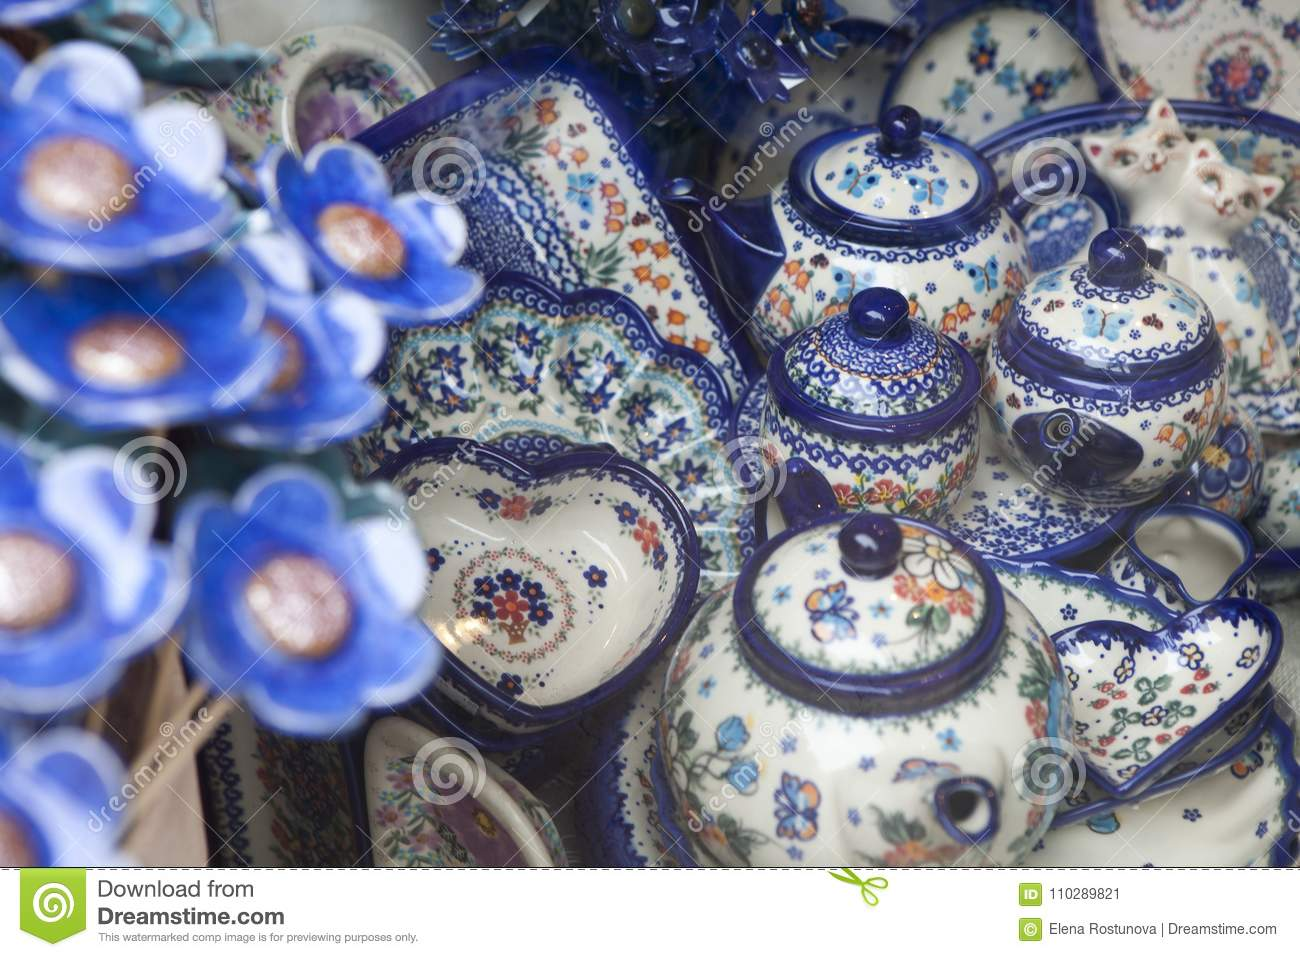 Royalty-Free Stock Photo & Ceramic Tableware With A Traditional Polish Design In A Souvenir ...